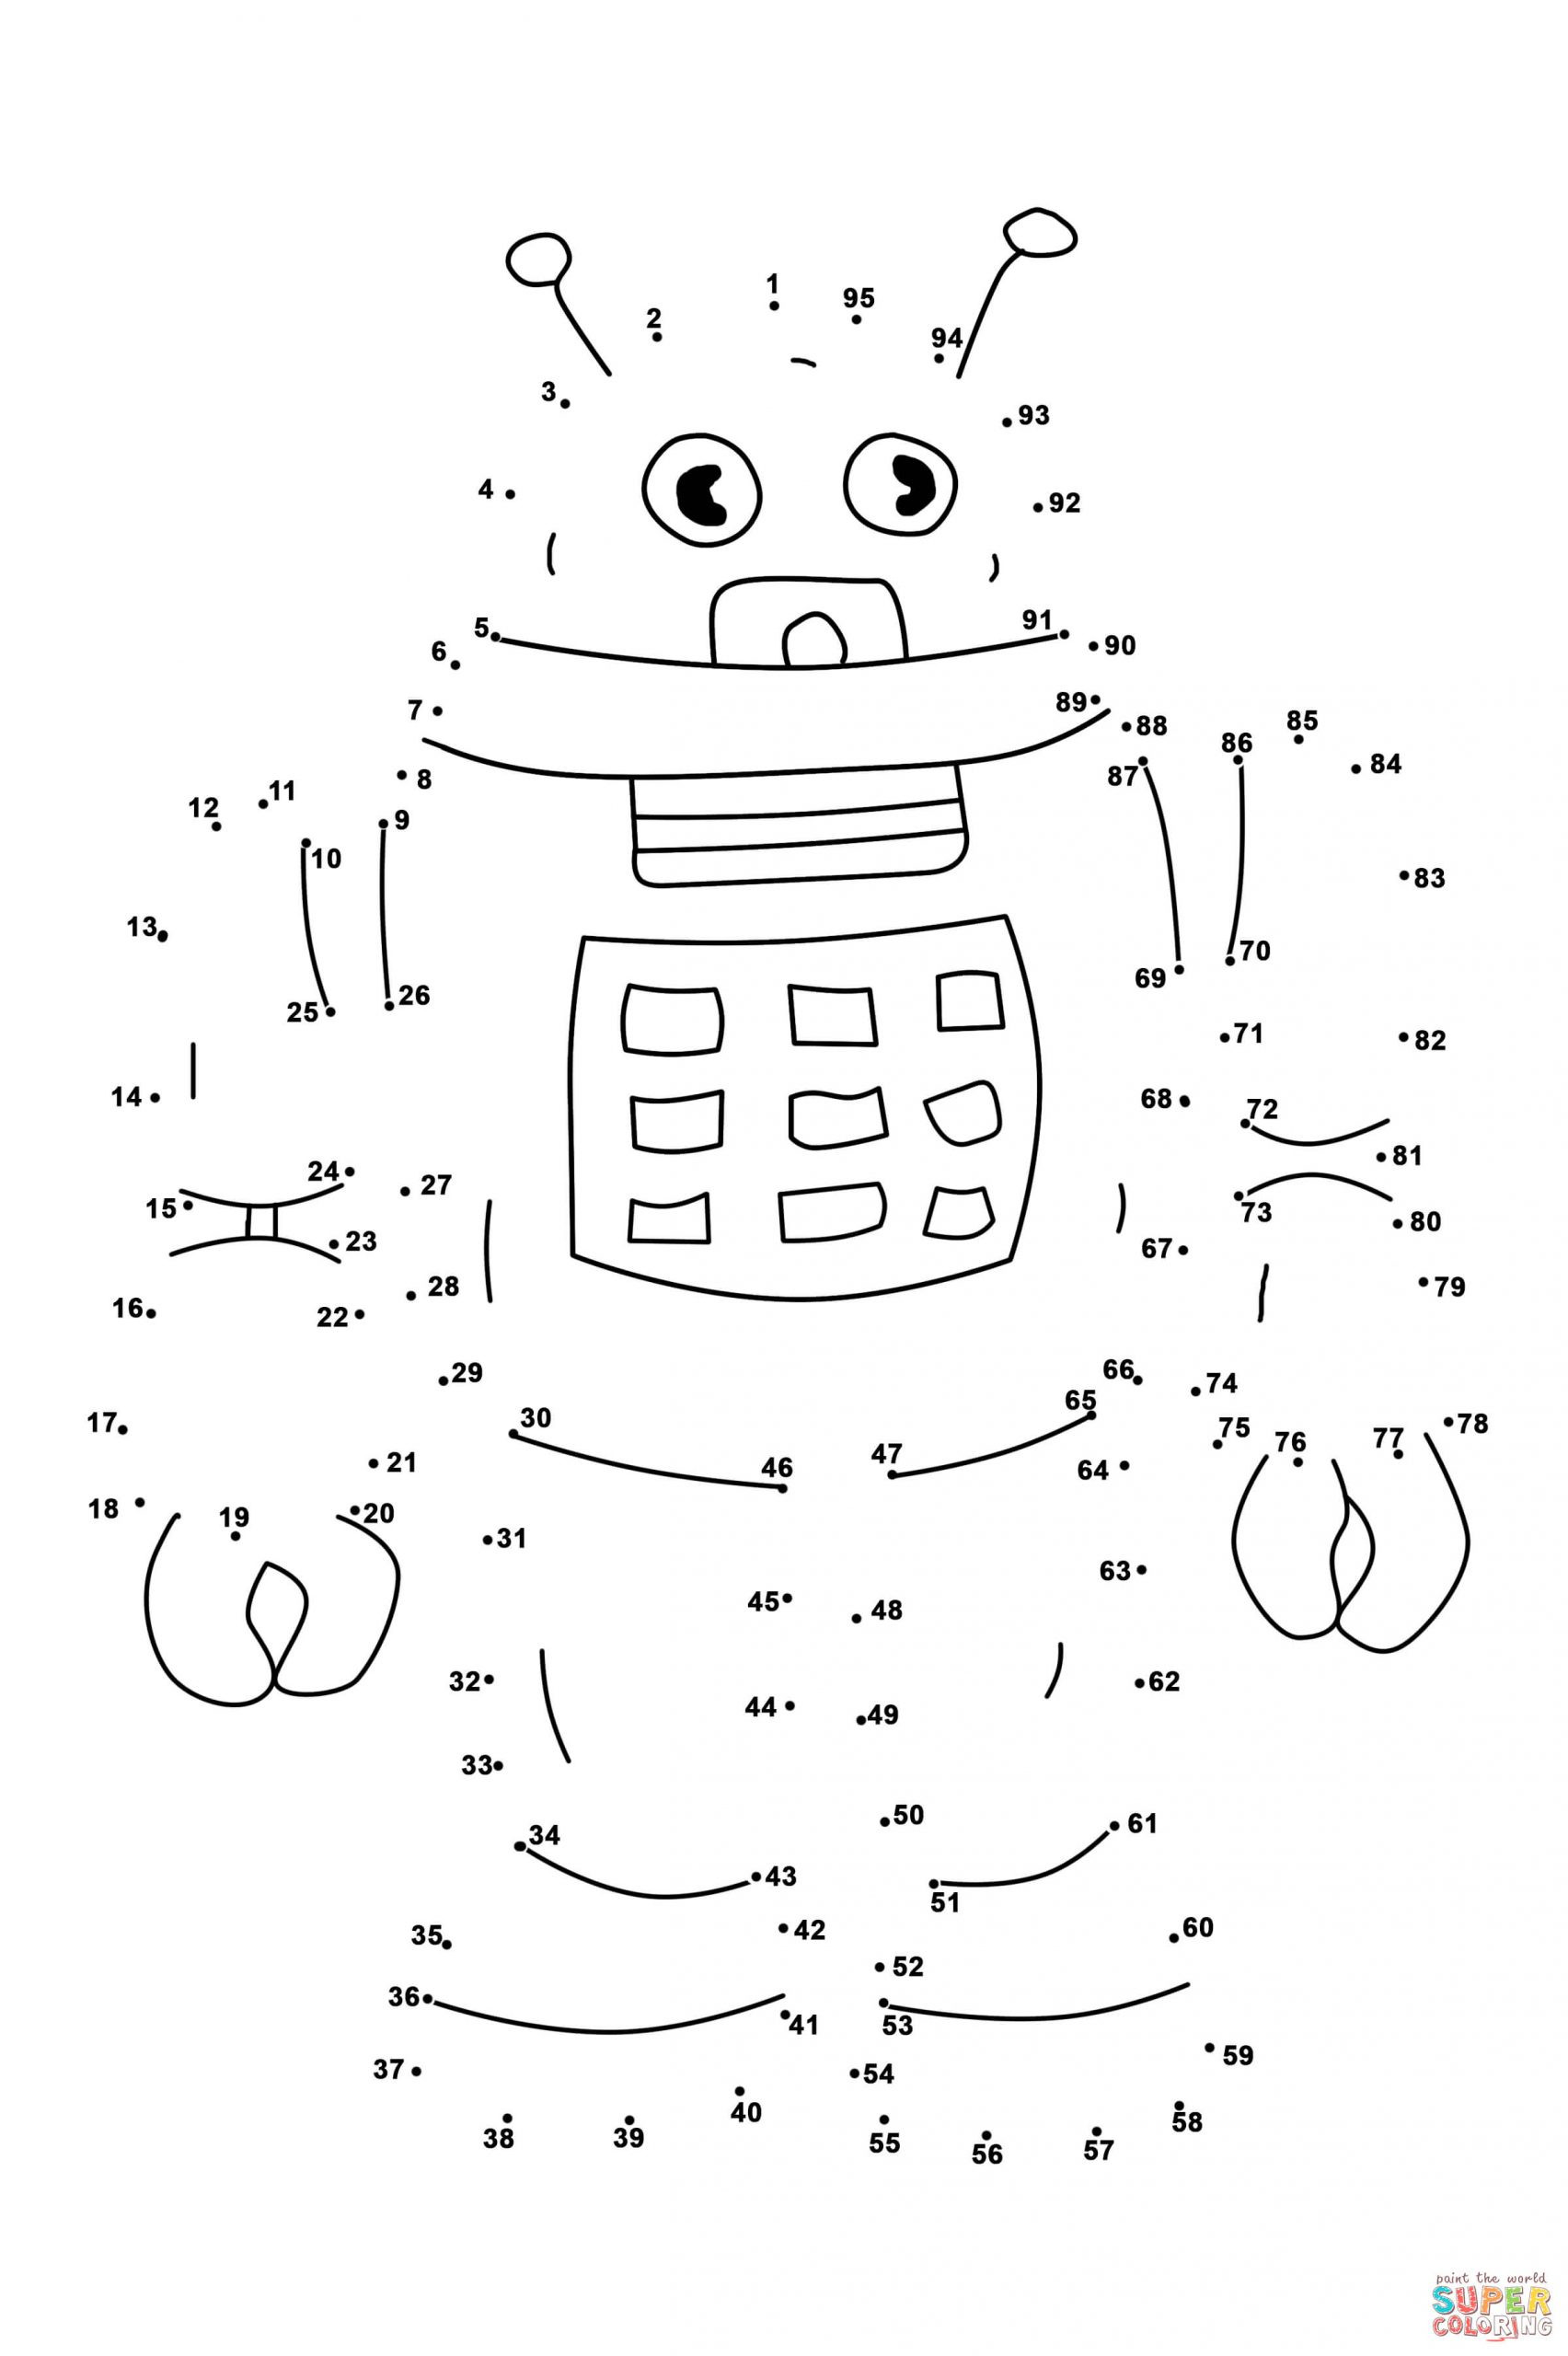 Abc Connect the Dots Printable Connect the Dots Coloring Pages Robot Dot to Free Printable